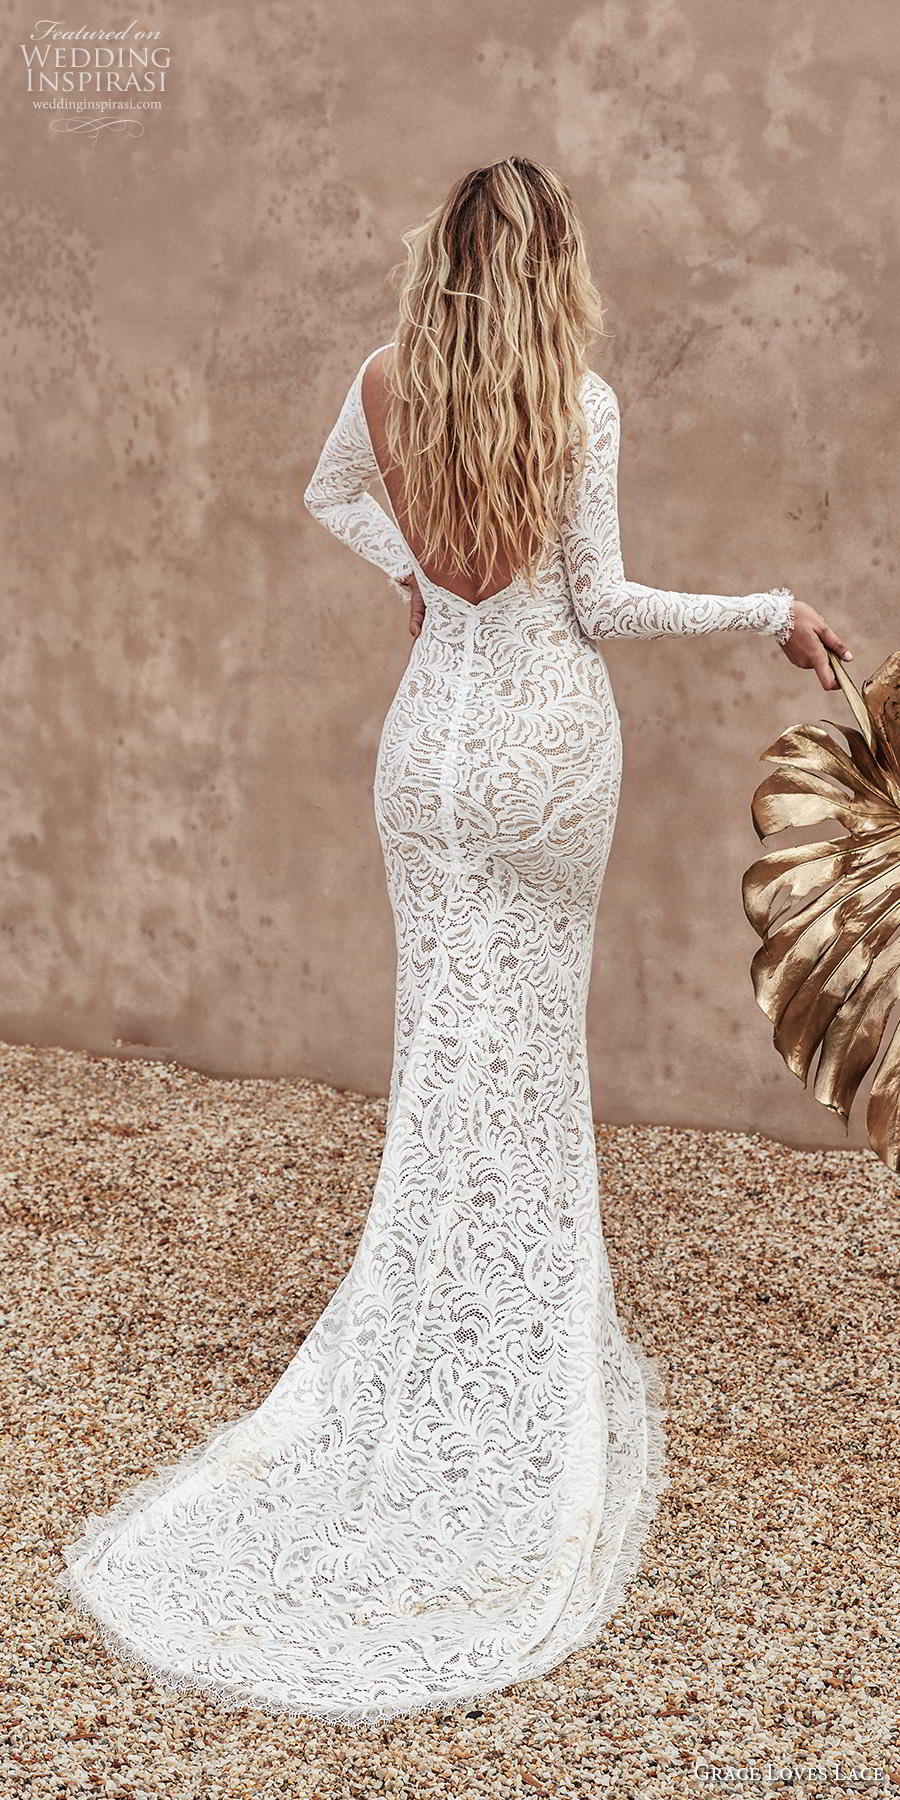 grace love lace 2020 bridal long sleeves bateau neckline full embellishment elegant fit and flare wedding dress backless medium train (7) bv